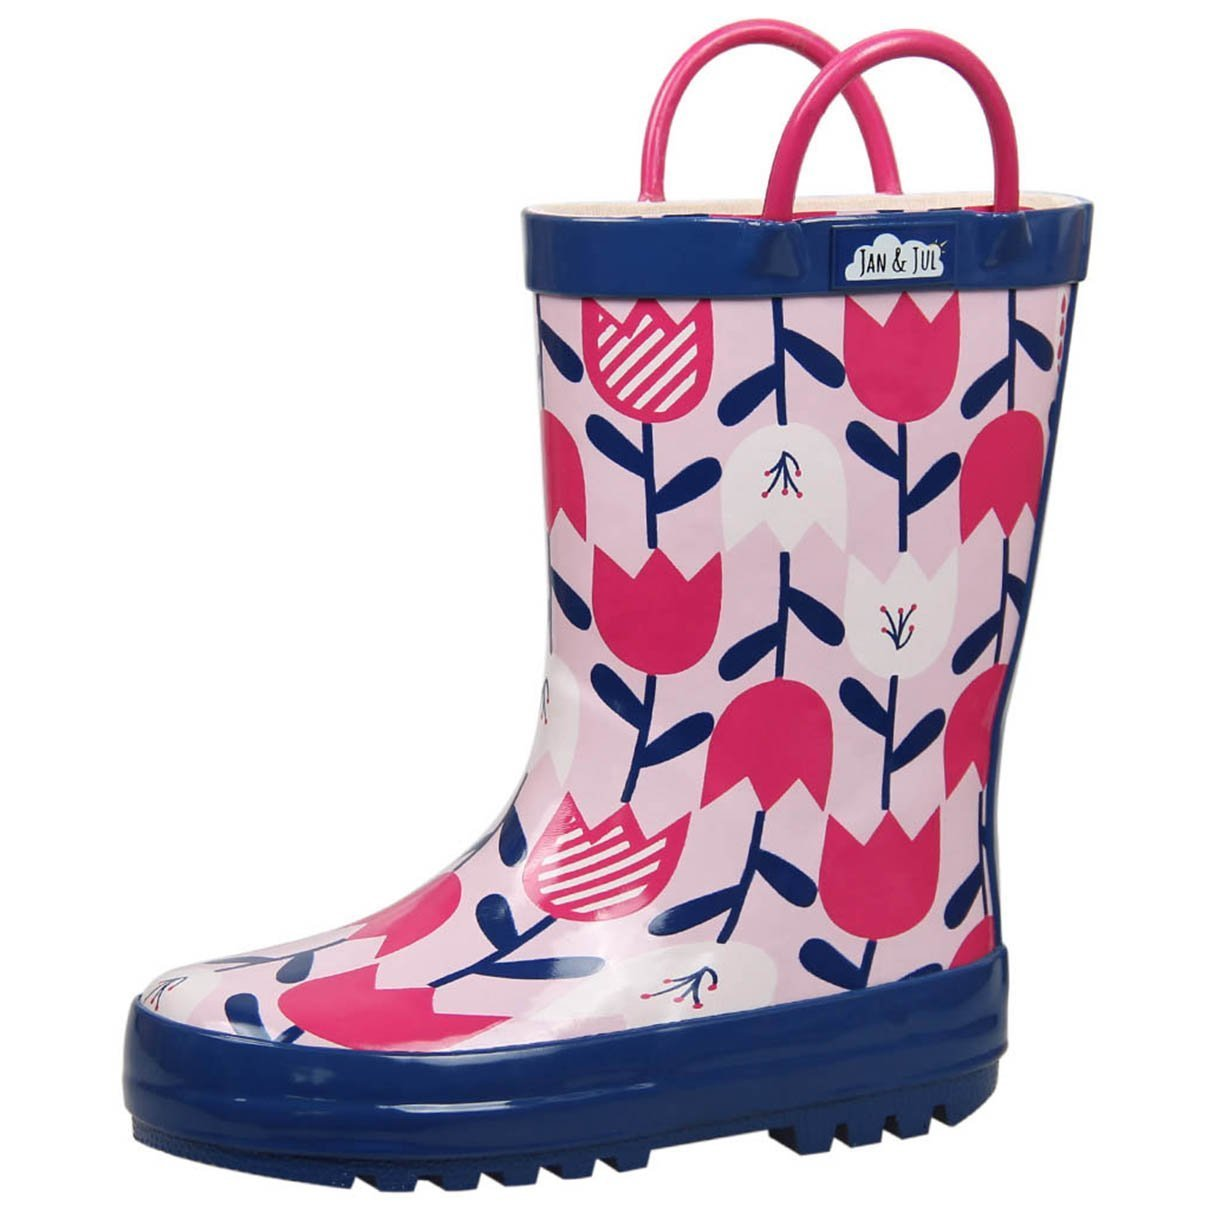 Natural Rubber Rain Boots Toddler Girls Kids (Toddler Size 8 with Handles, Tulip Flowers)